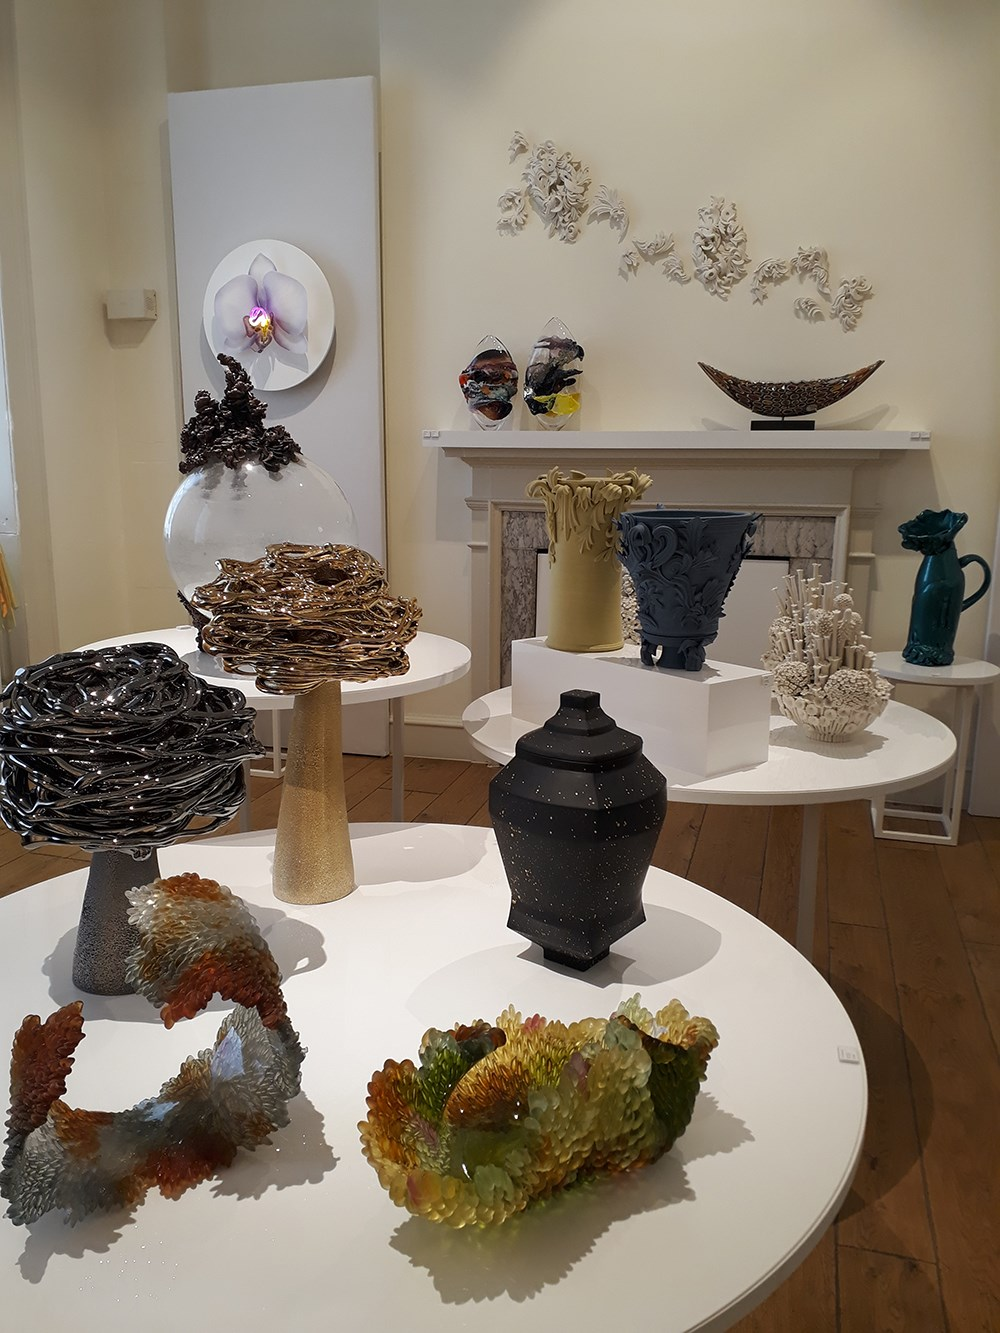 vessel gallery room at collect 2020 somerset house